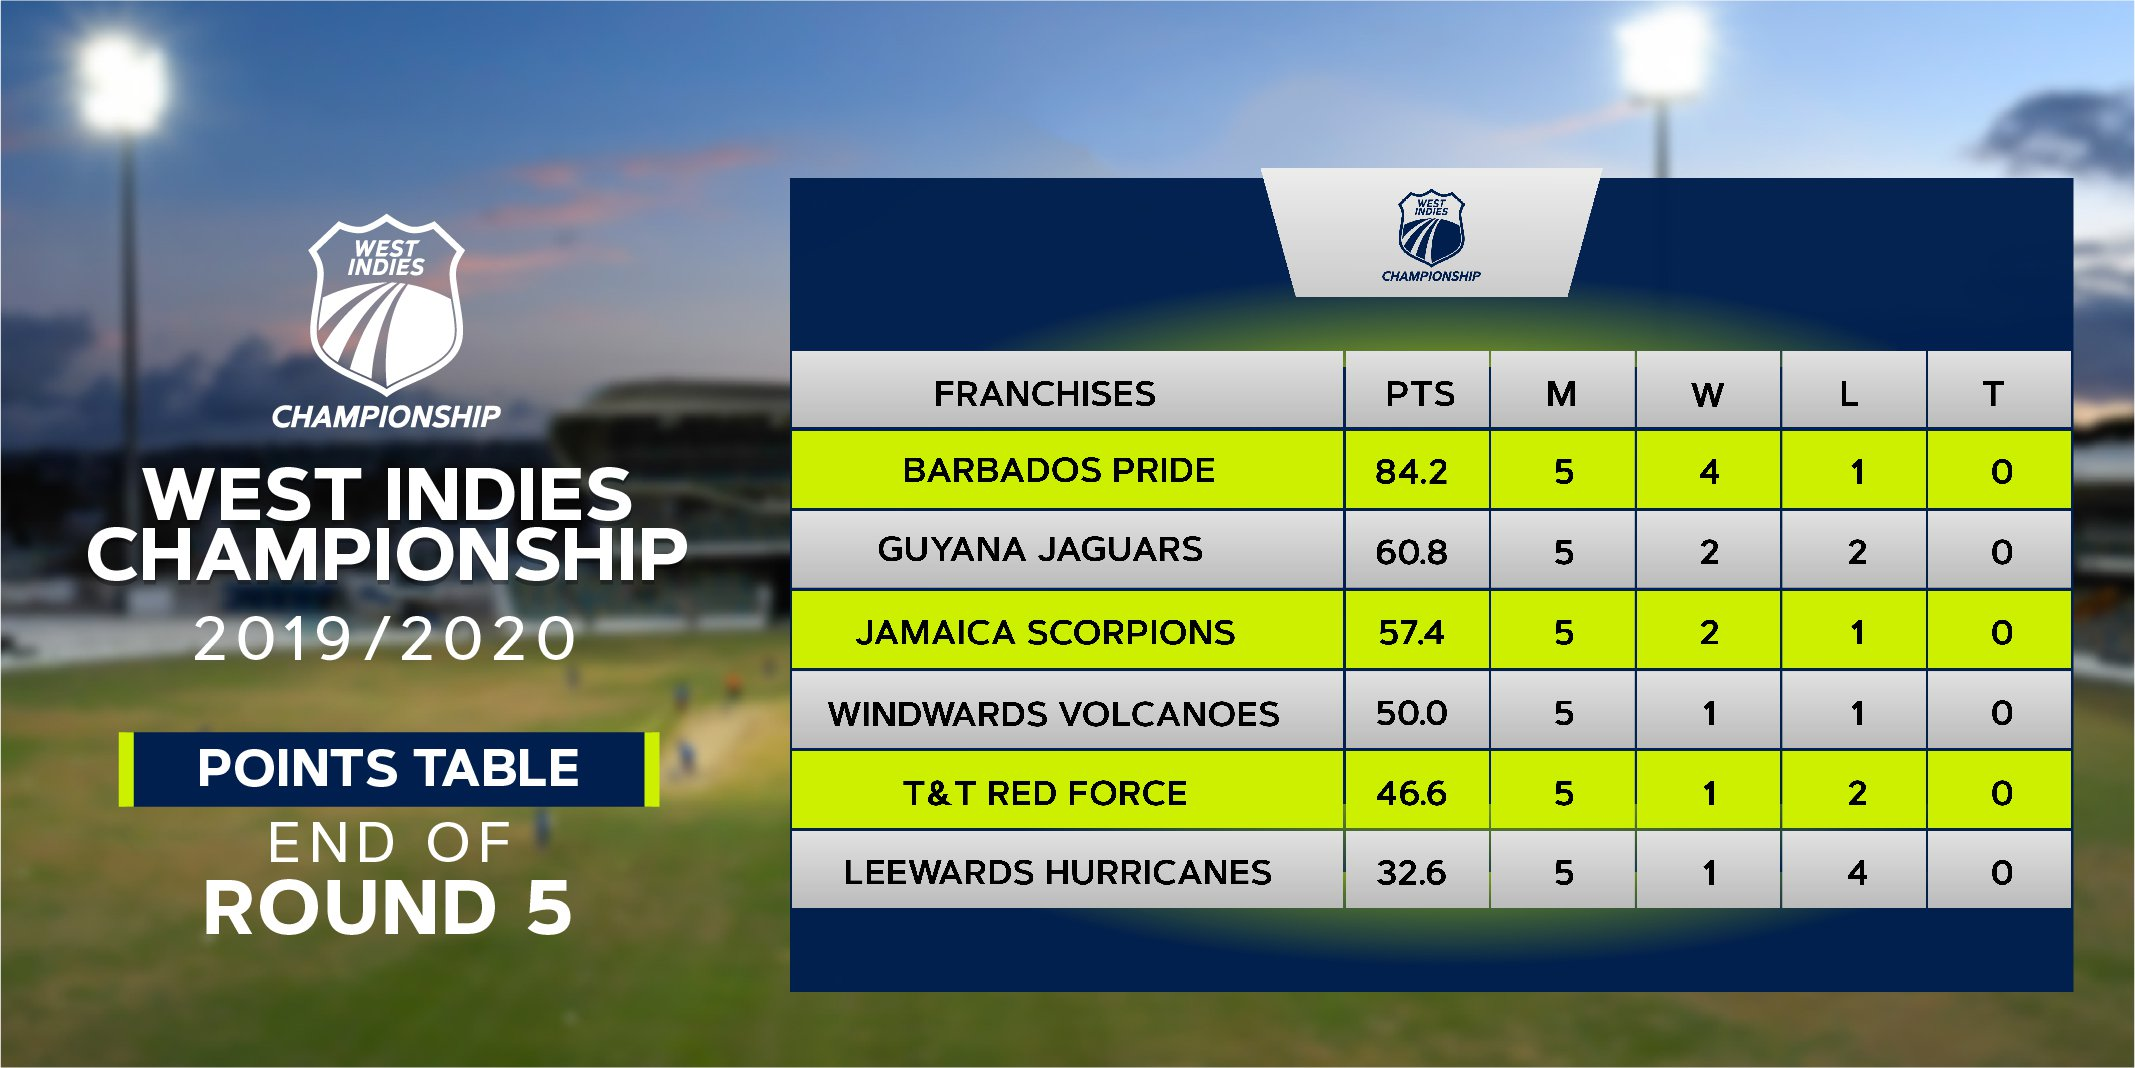 West Indies Championship 2020 - Points Table - End R5.jpg